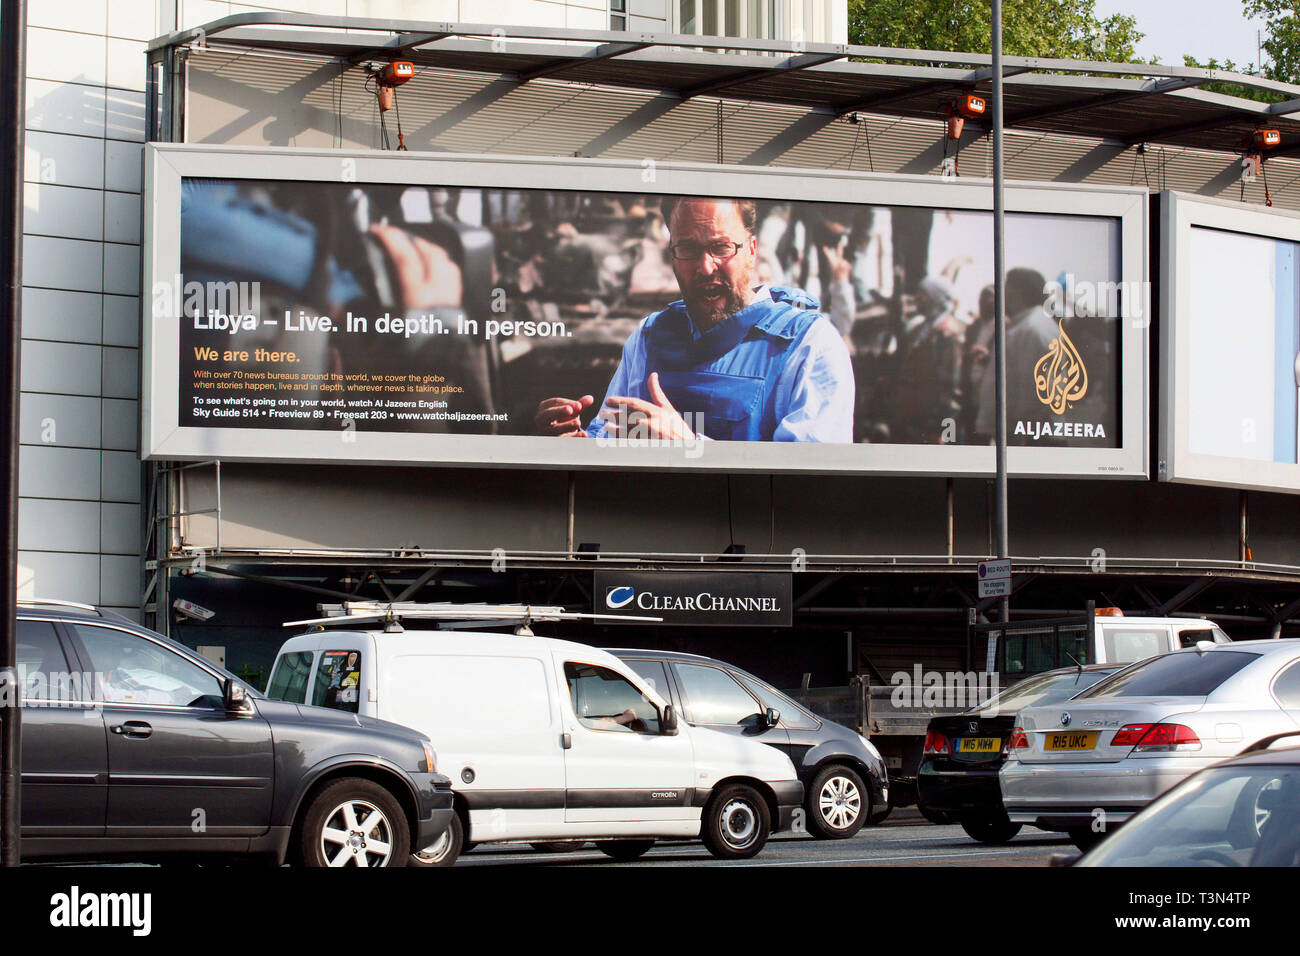 Al Jazeera news advert showing a war reporter wearing a bullet proof jacket presenting to camera in Libya. Cromwell Road, London. 6.5.11. - Stock Image